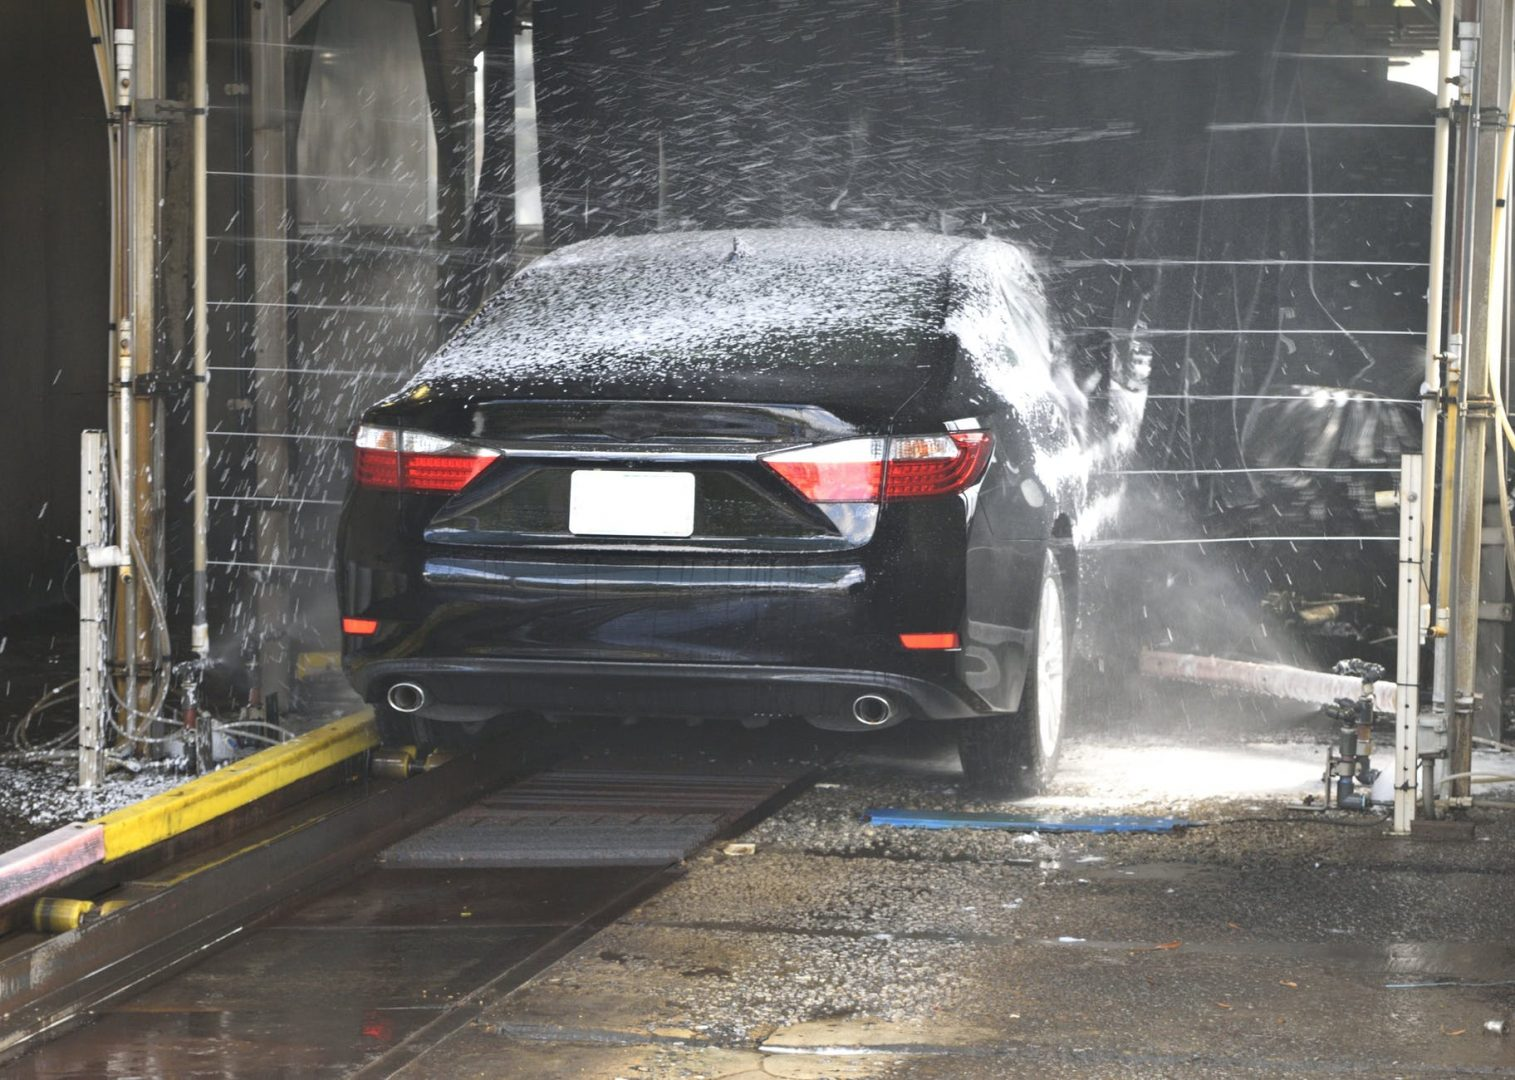 Woshline Mobile Car Valeting Services In London Promo Video